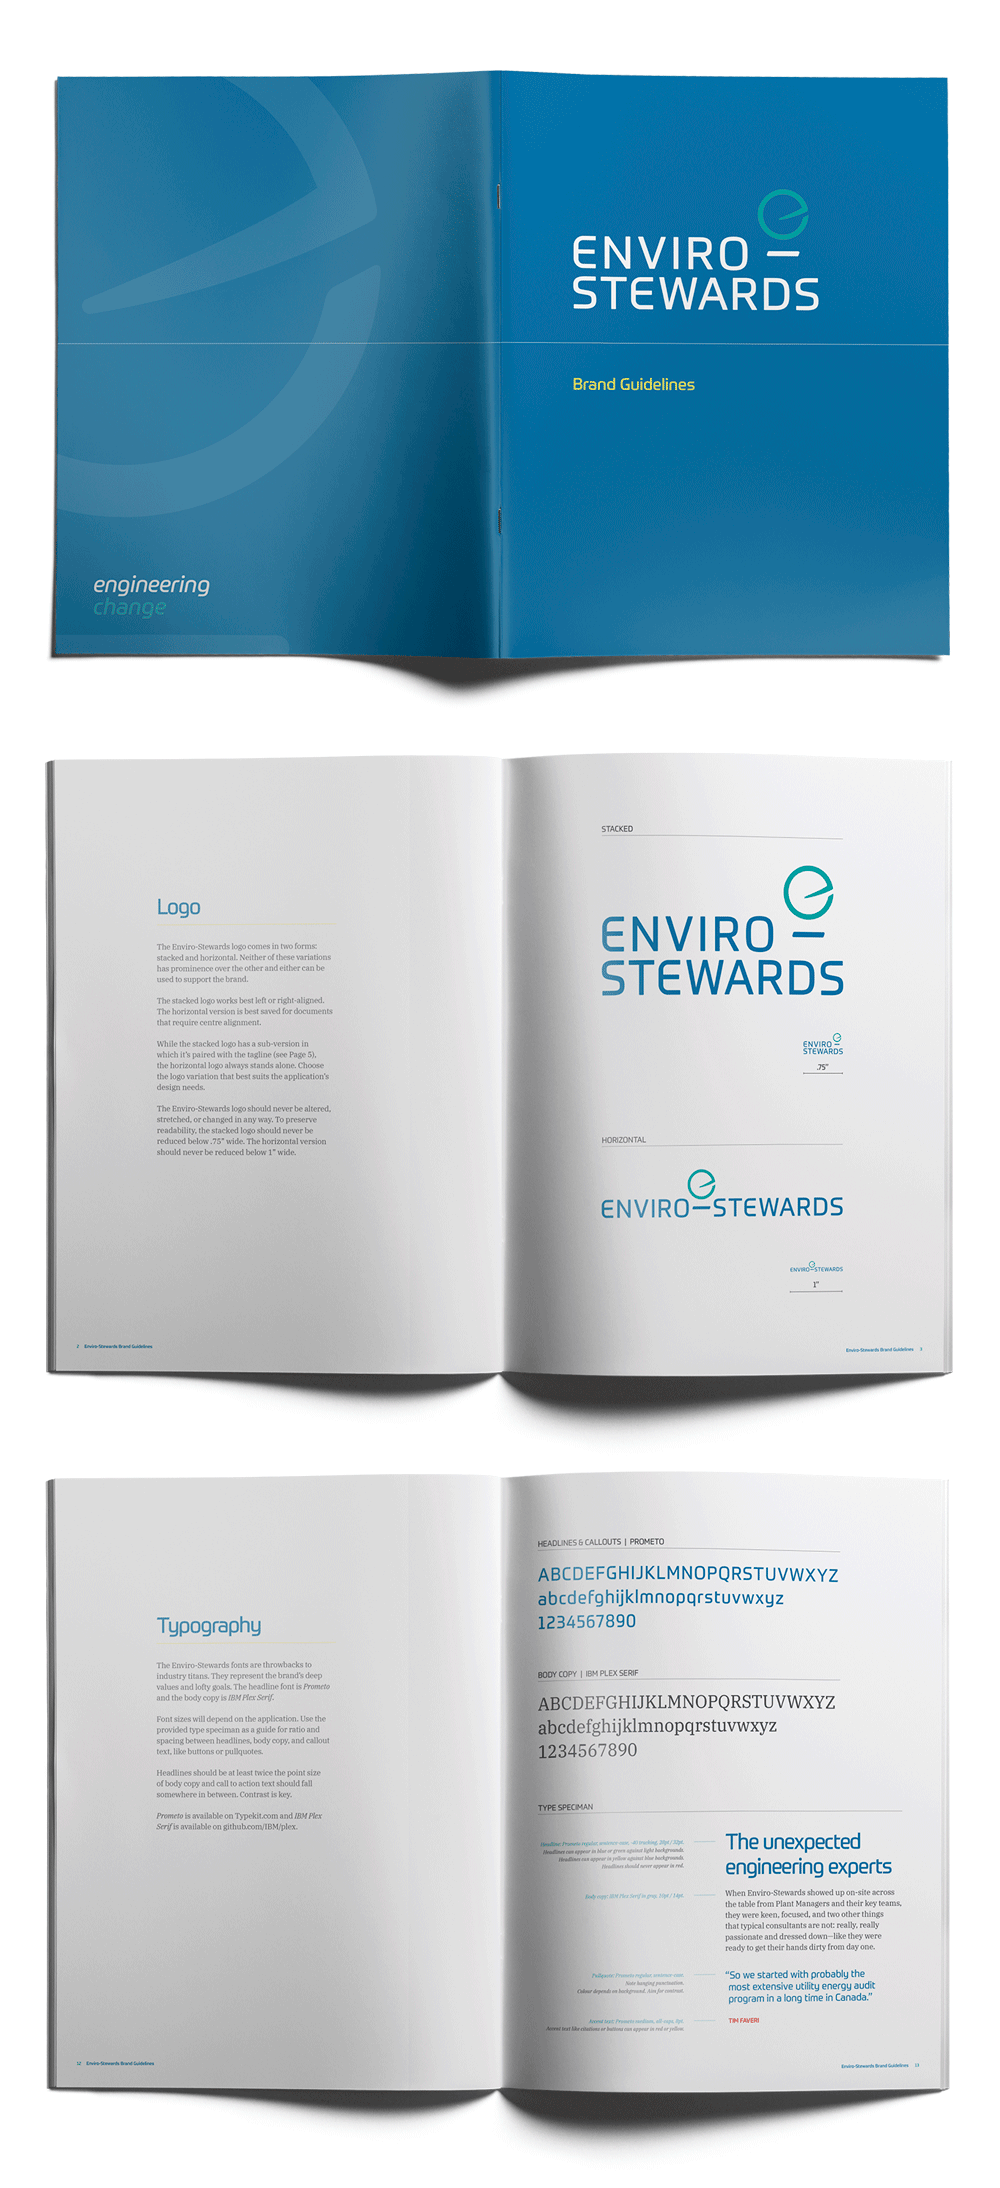 Enviro-Stewards brand design by Flipside Creative